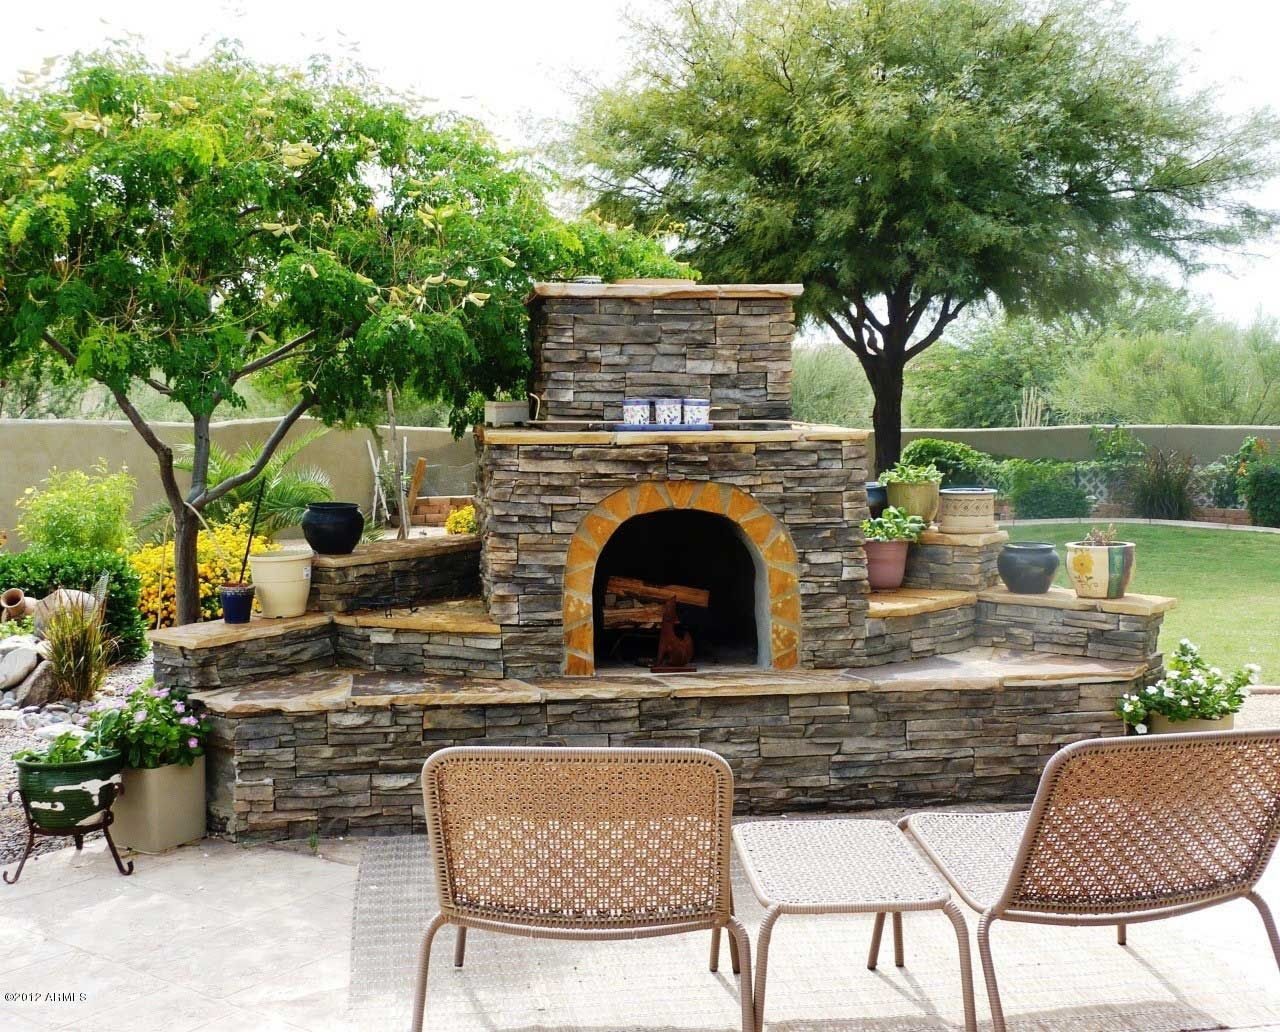 Garden Fireplace Design Plans Outdoor Patio And Fireplace Ideas  Dream Home  Pinterest .